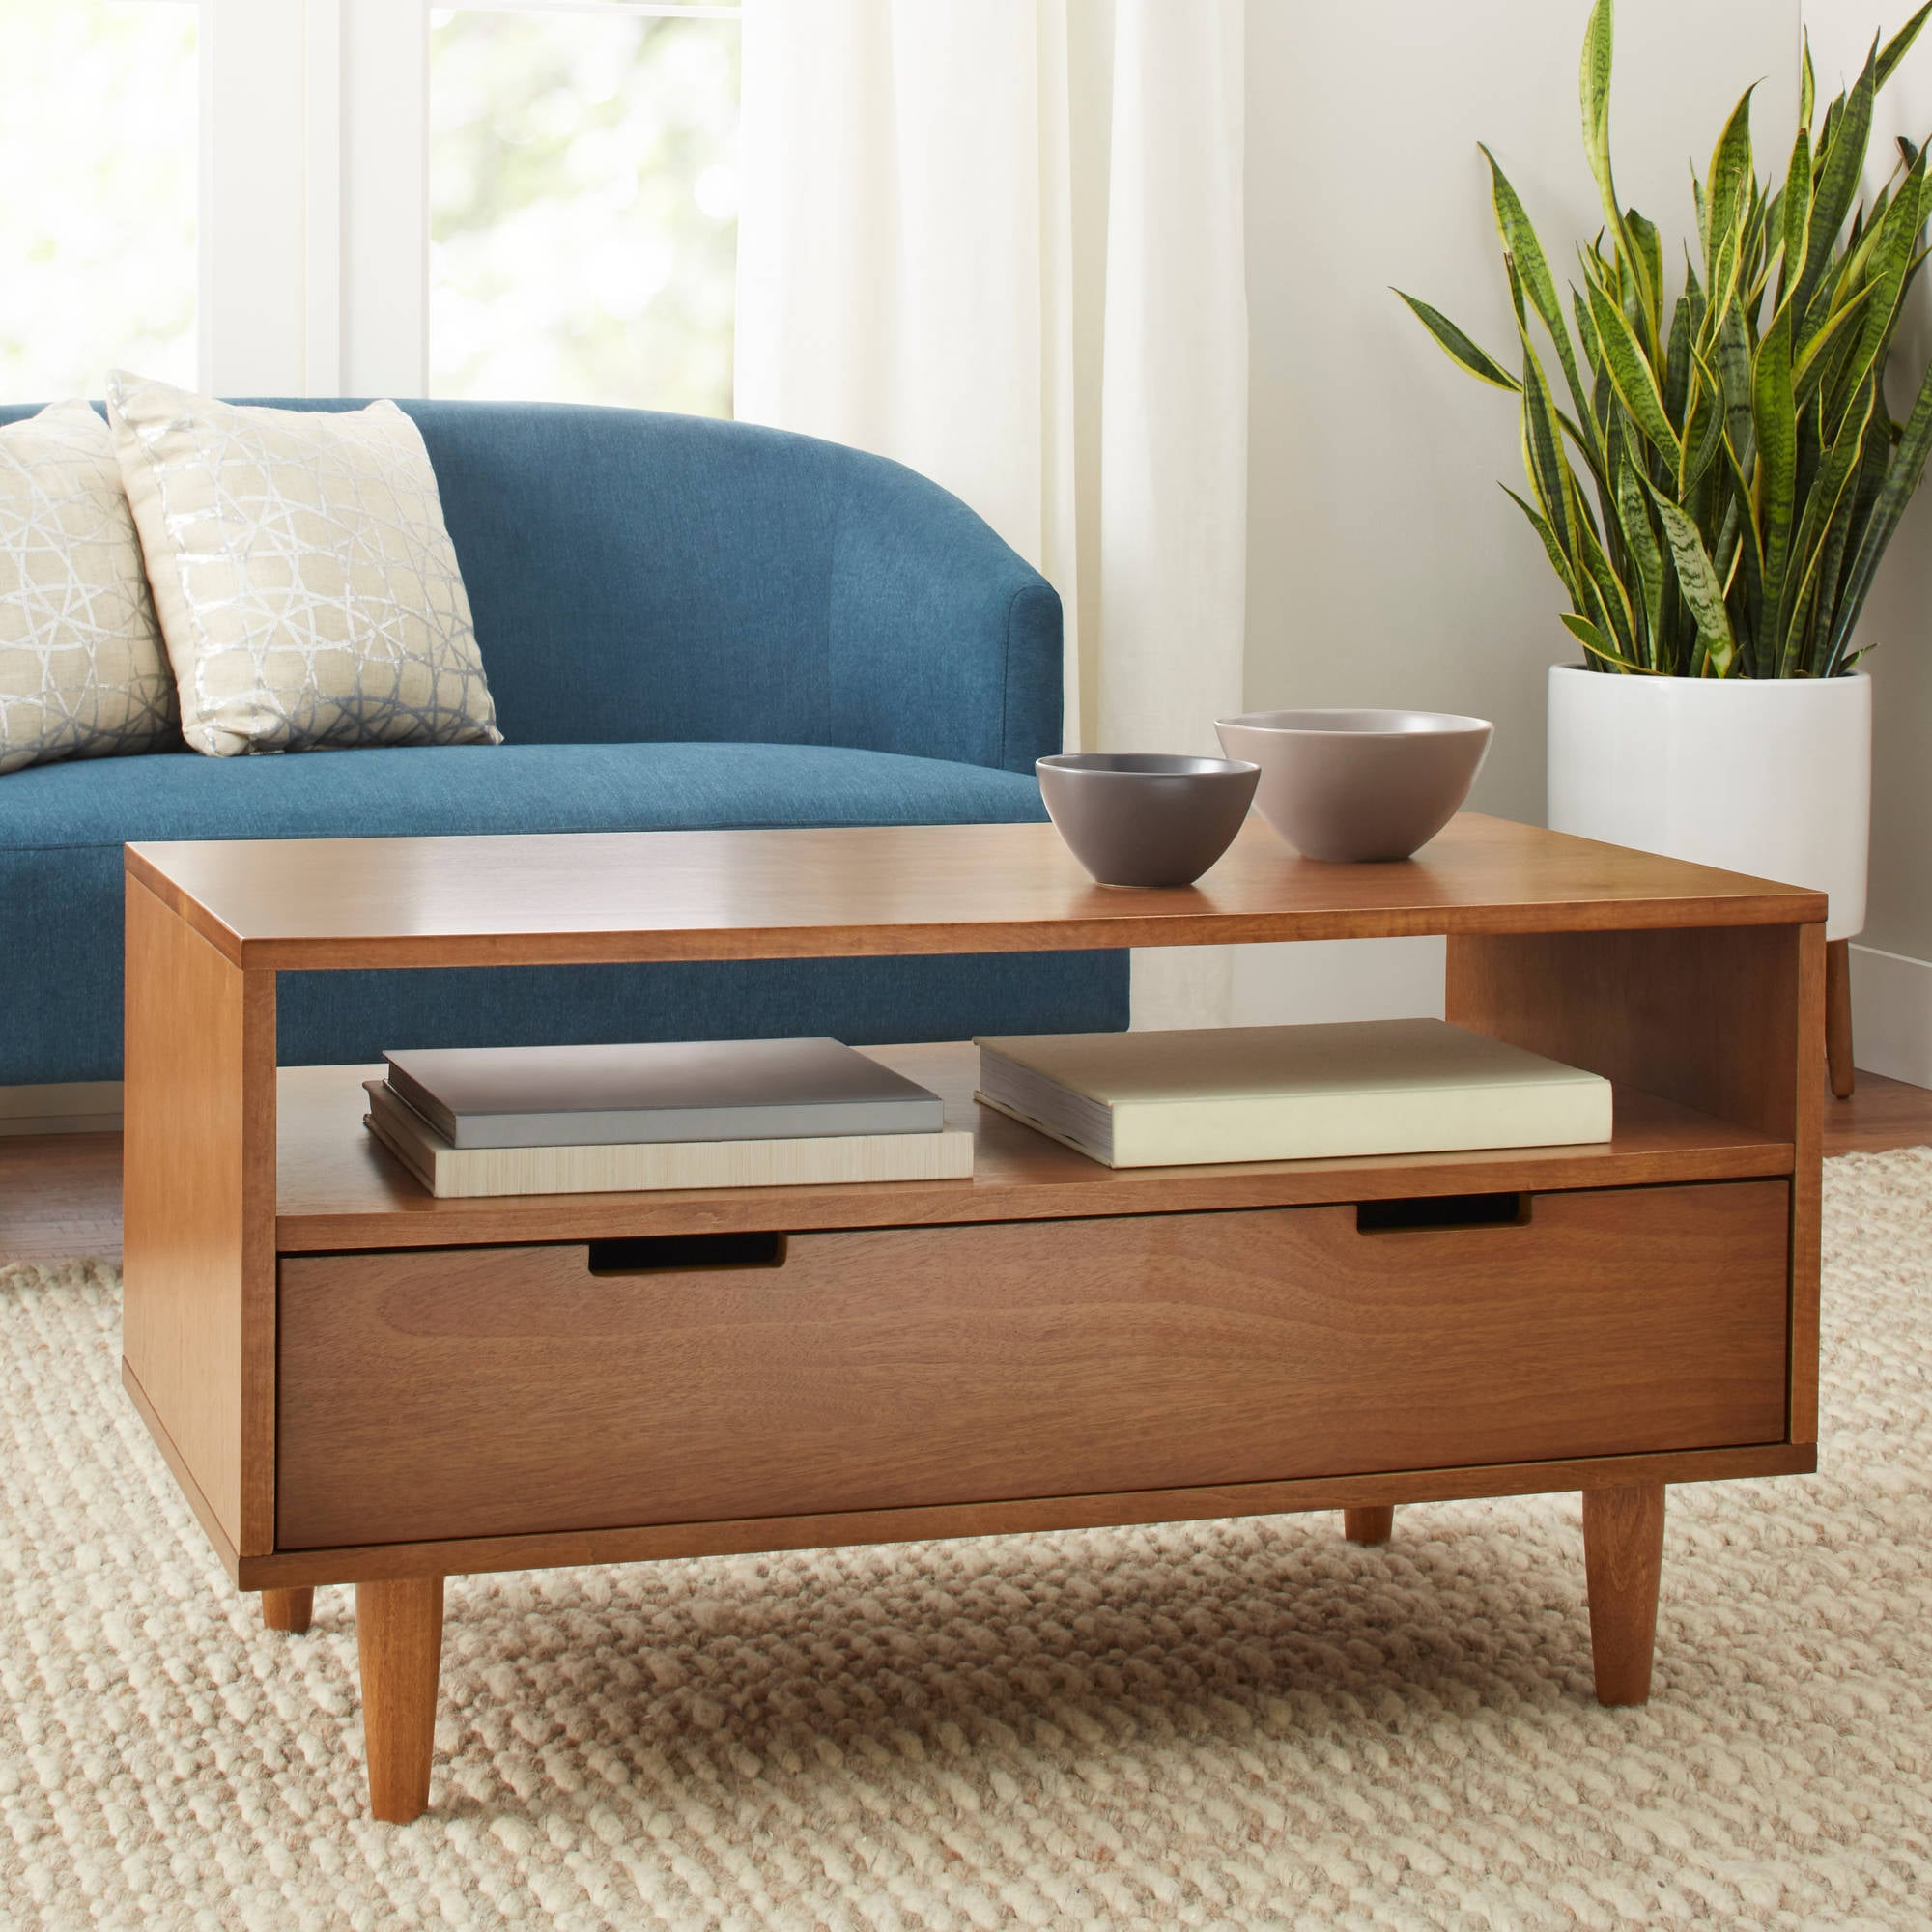 Better Homes And Gardens Flynn Midcentury Modern Coffee